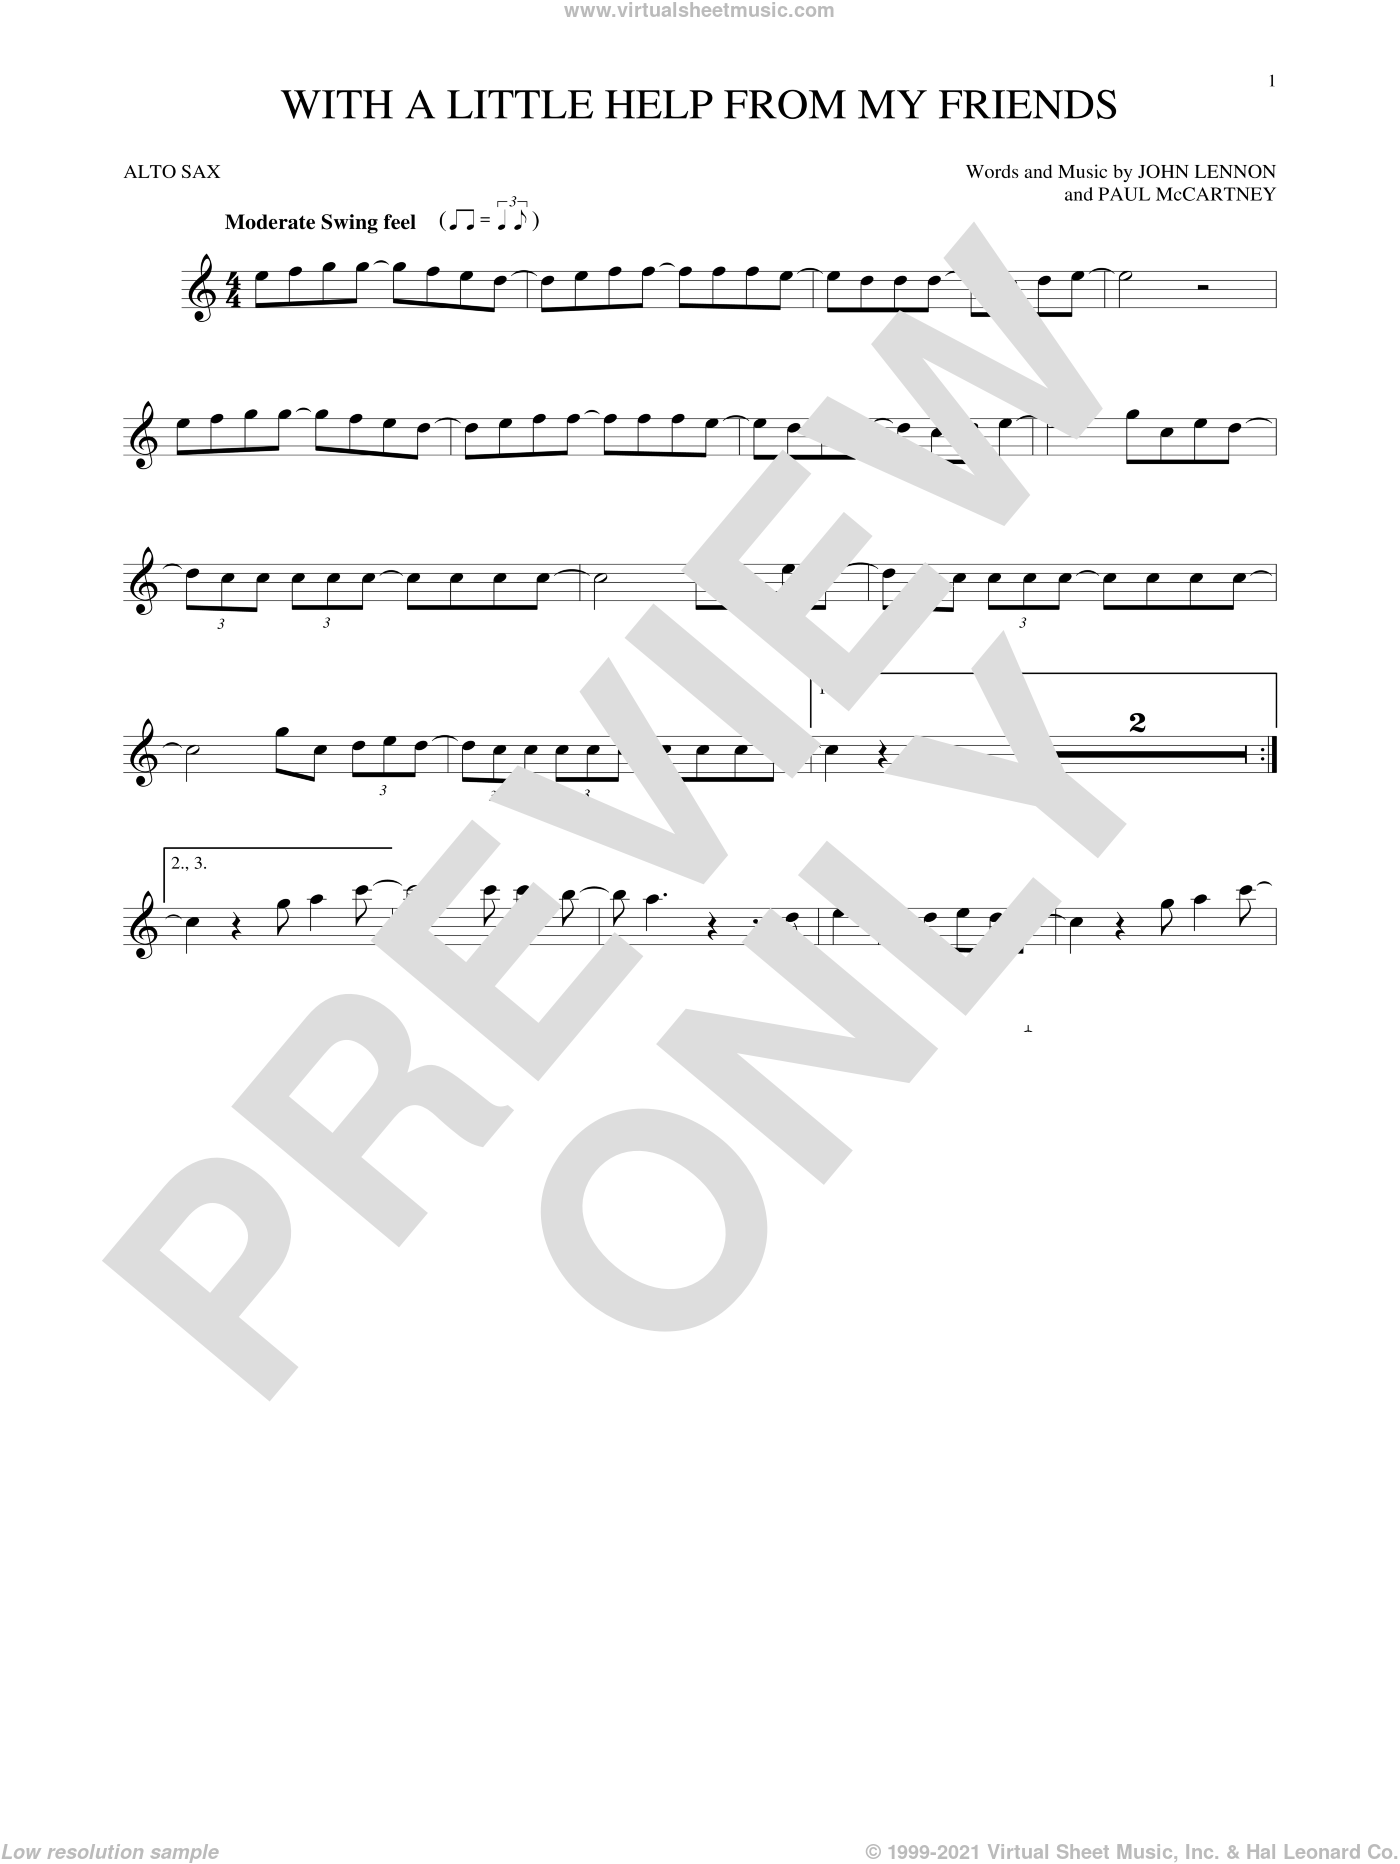 With A Little Help From My Friends sheet music for alto saxophone solo by Paul McCartney, Joe Cocker, The Beatles and John Lennon. Score Image Preview.